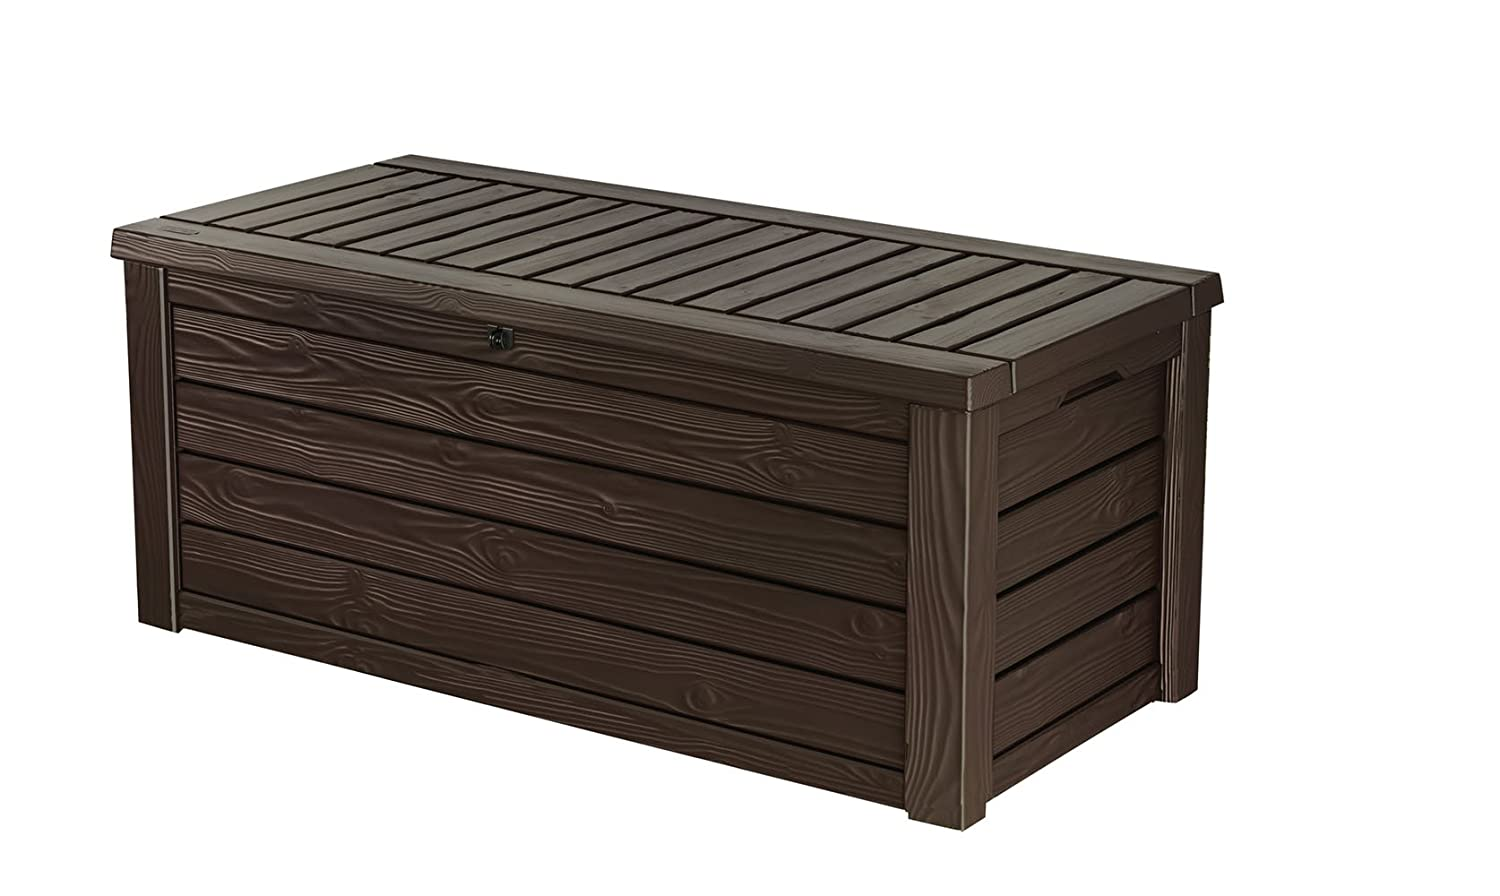 Keter Westwood Plastic Deck Storage Container Box Outdoor Patio Garden Furniture 150 Gal, Brown 231666